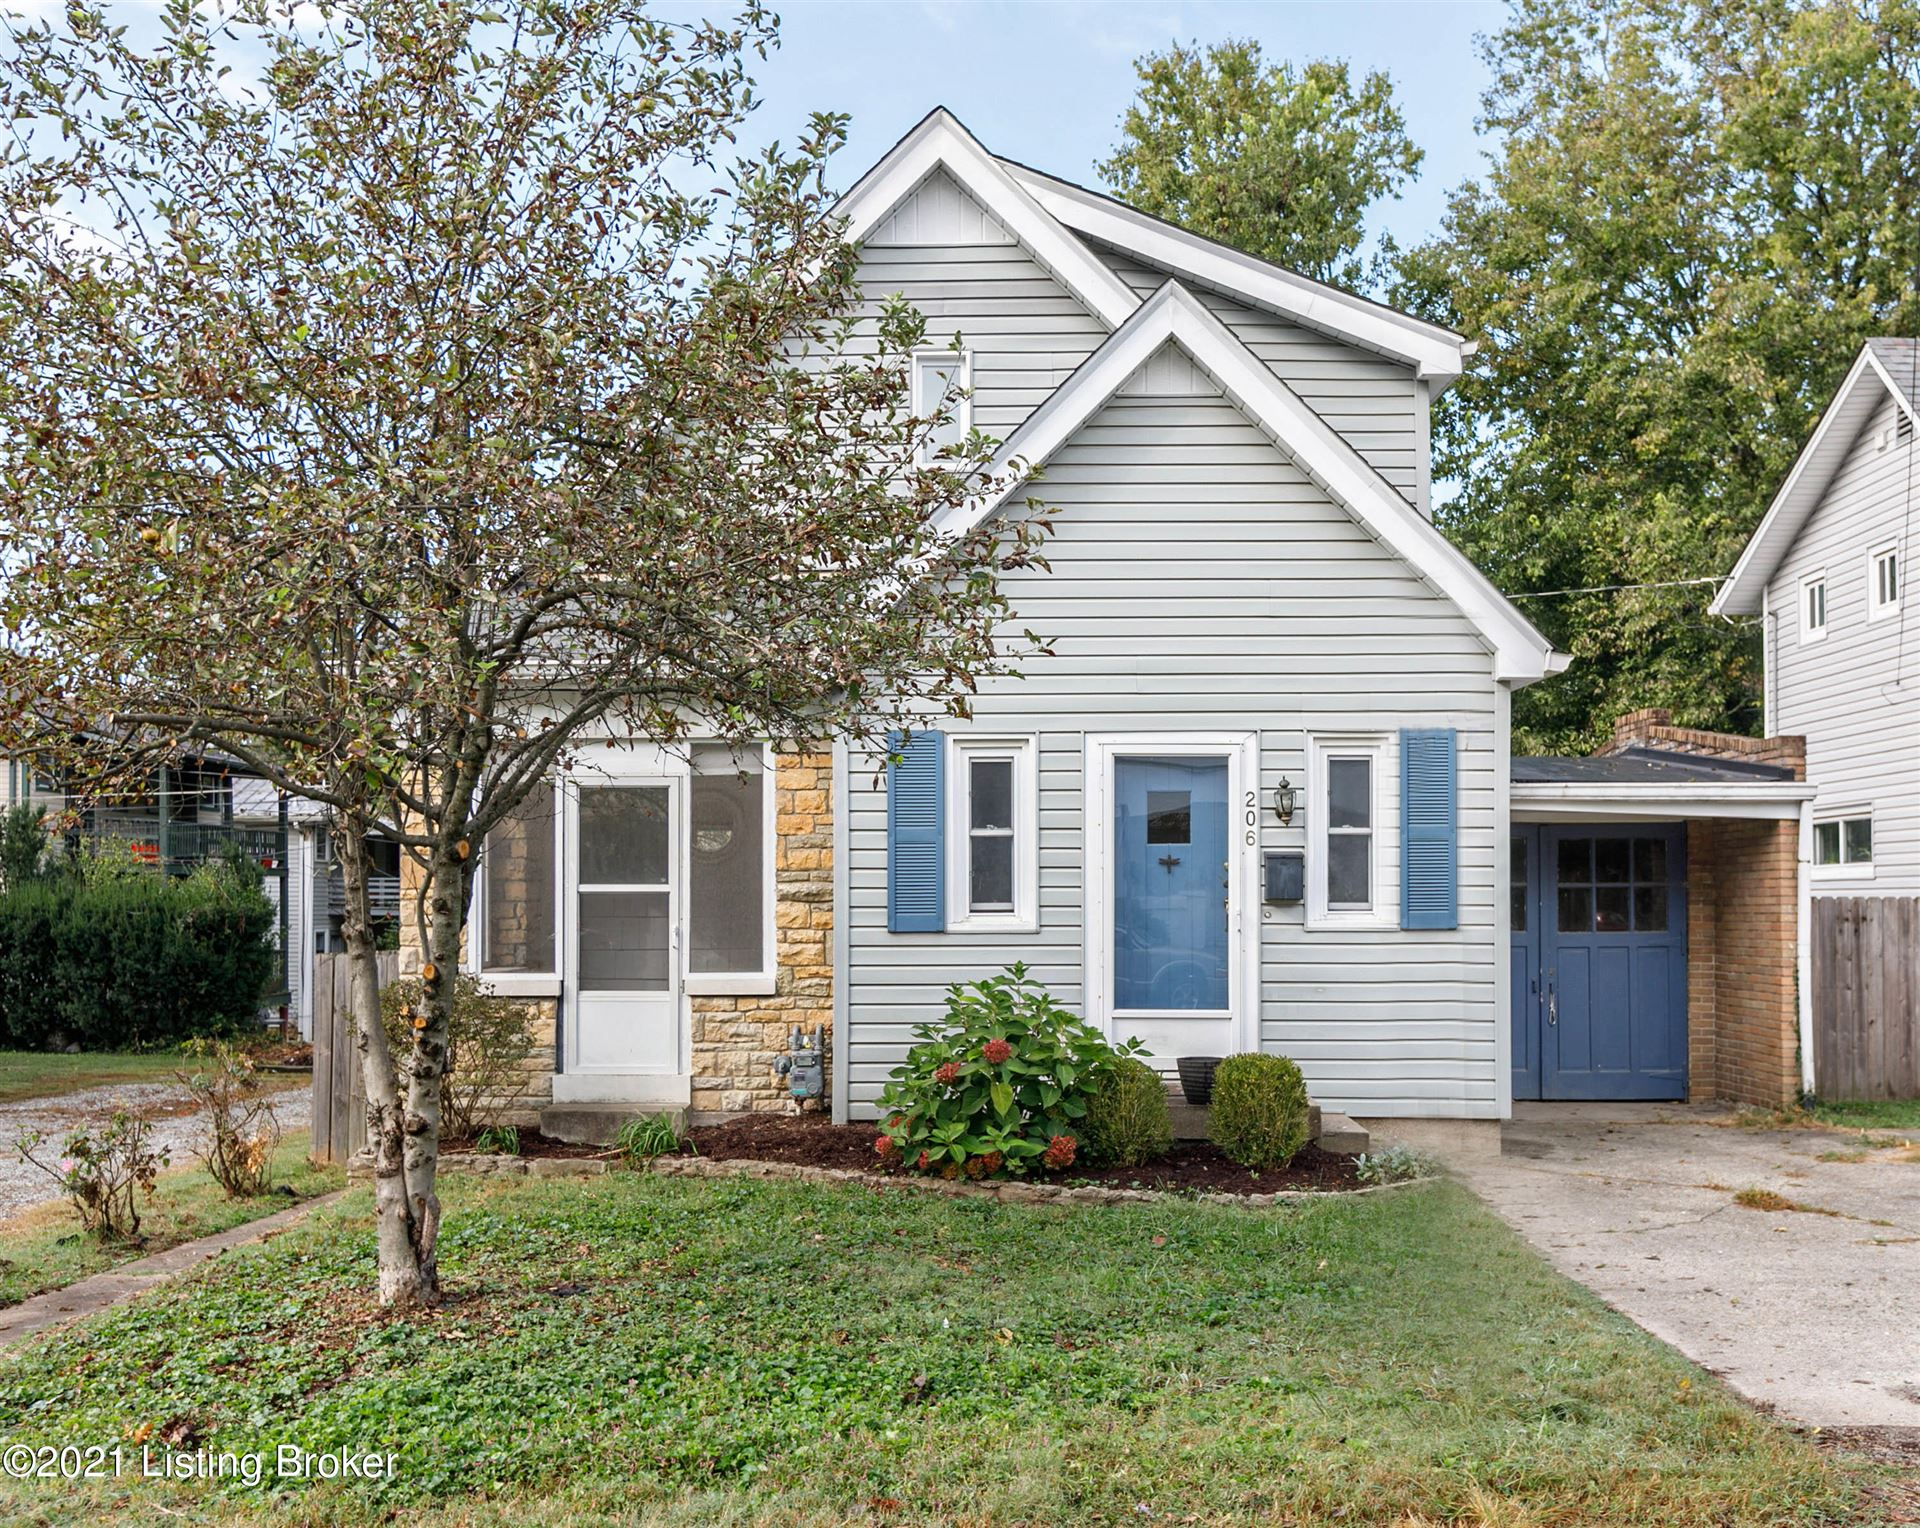 Photo for 206 Linden Ln, Louisville, KY 40206 (MLS # 1579018)